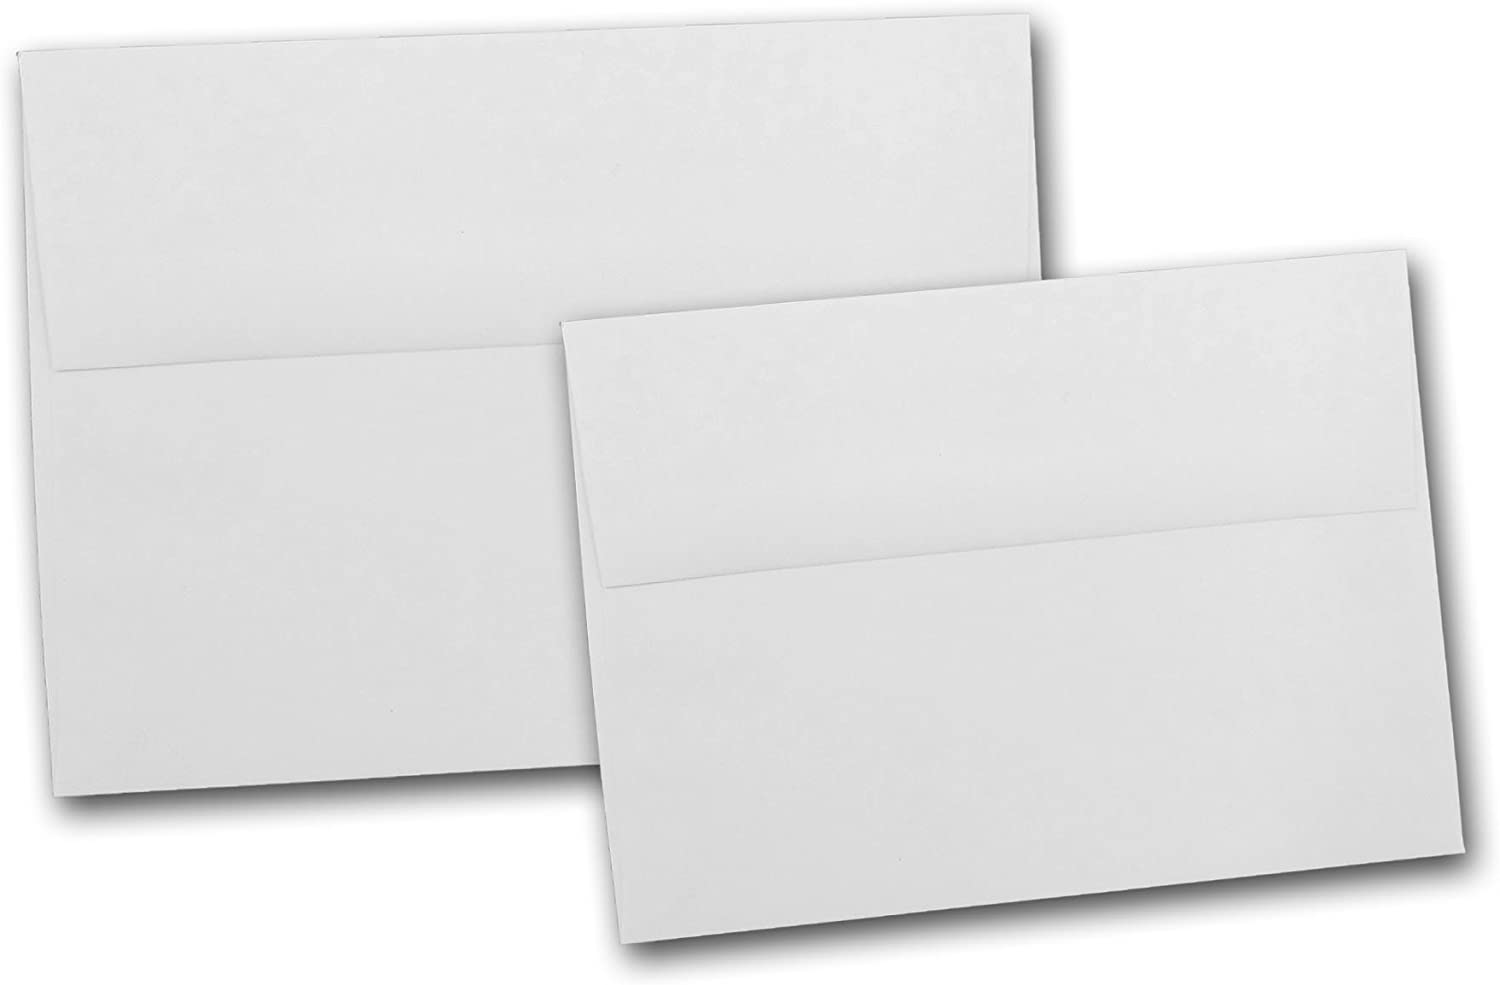 Neenah Classic Crest A2 Envelopes Limited price sale 50 Cash special price White Pk Solar -